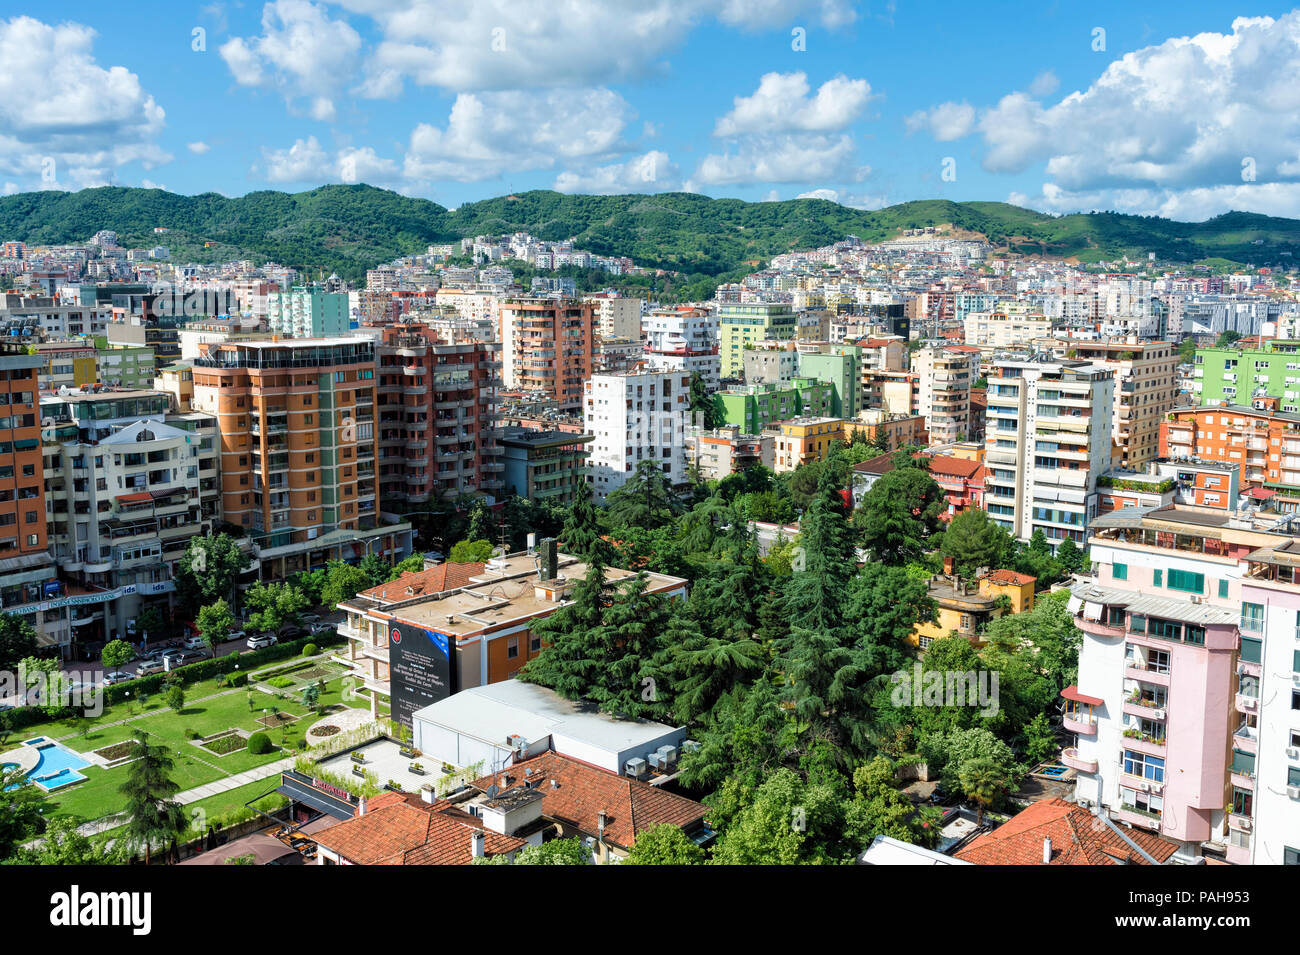 View over Tirana, Tirana, Albania - Stock Image